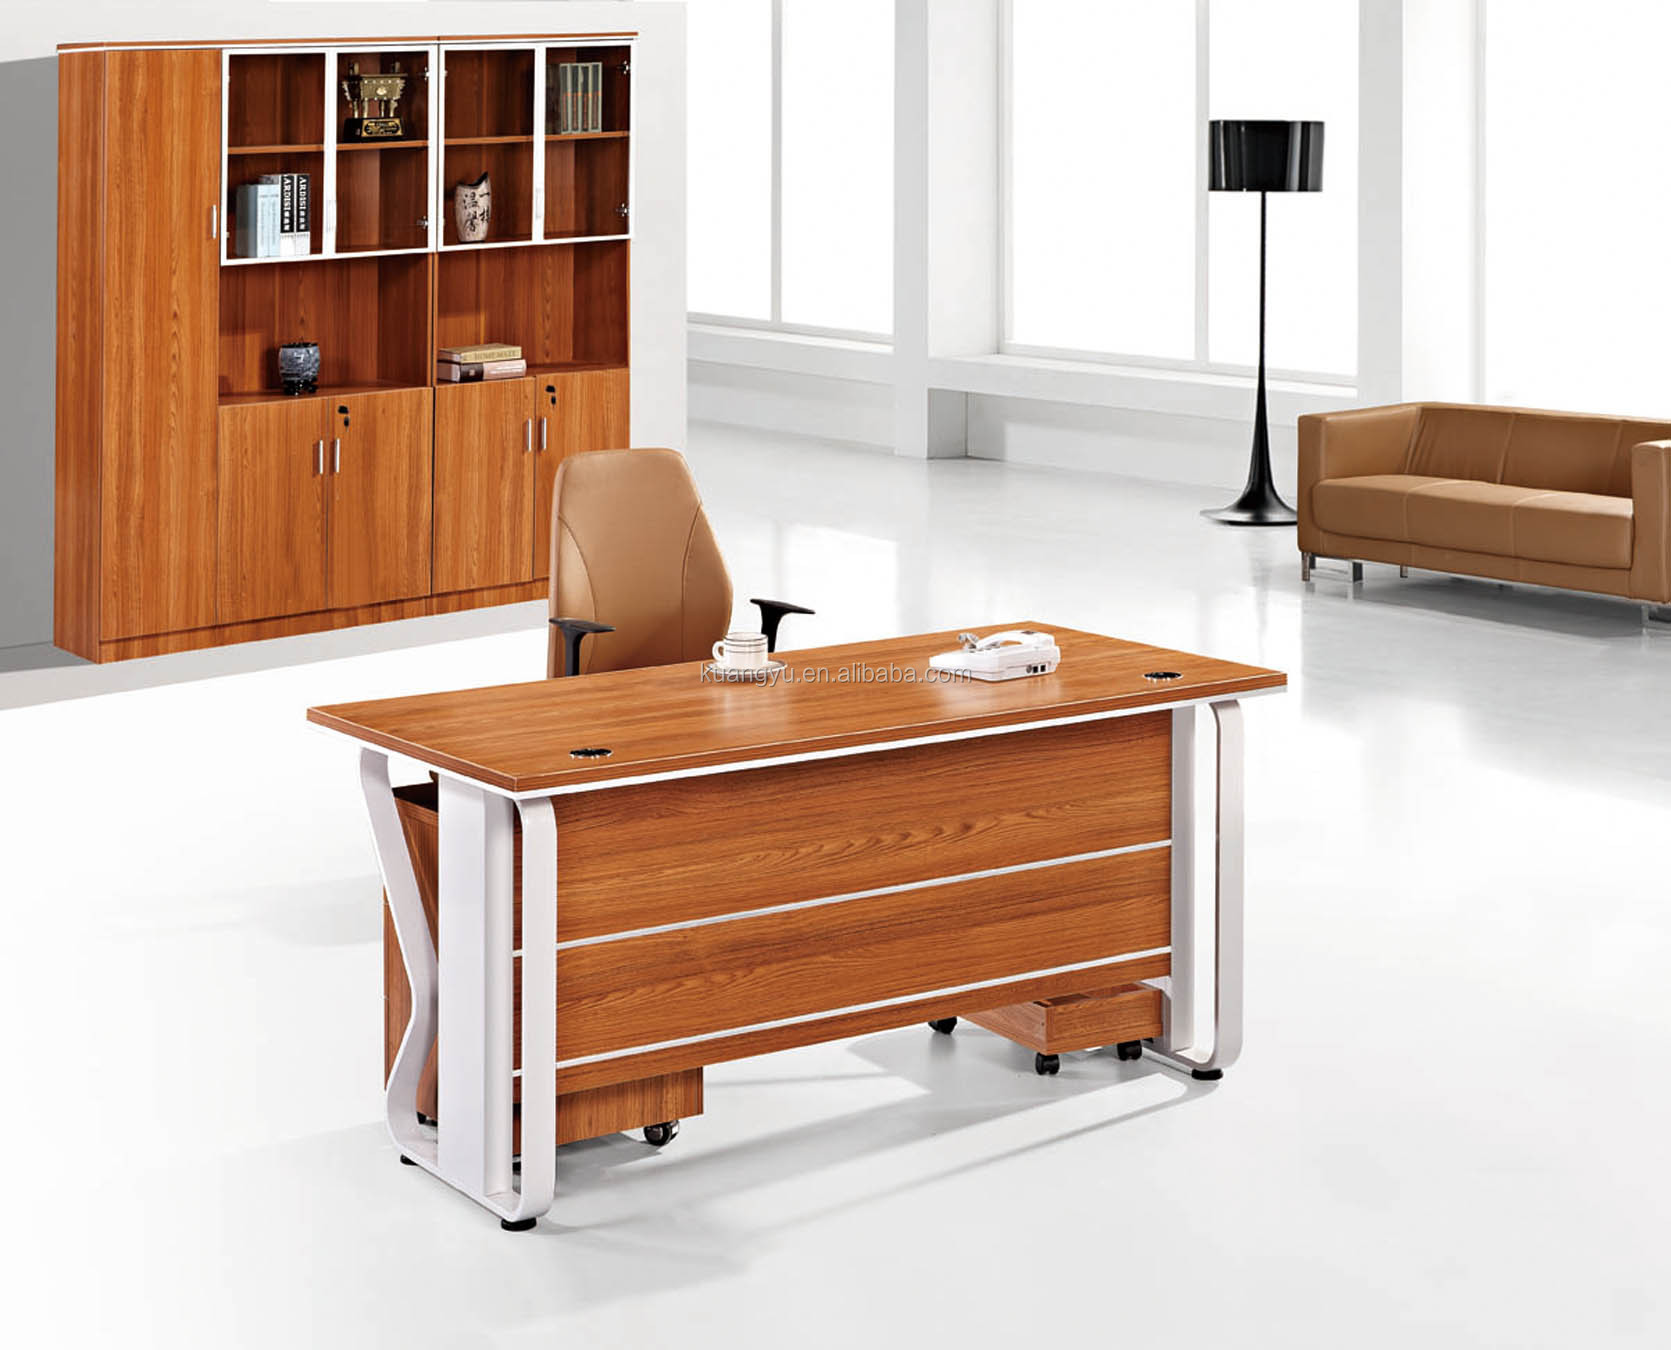 Cheap I shaped Office Desk,whole sale office desk,Rectangular Shaped Office Desk